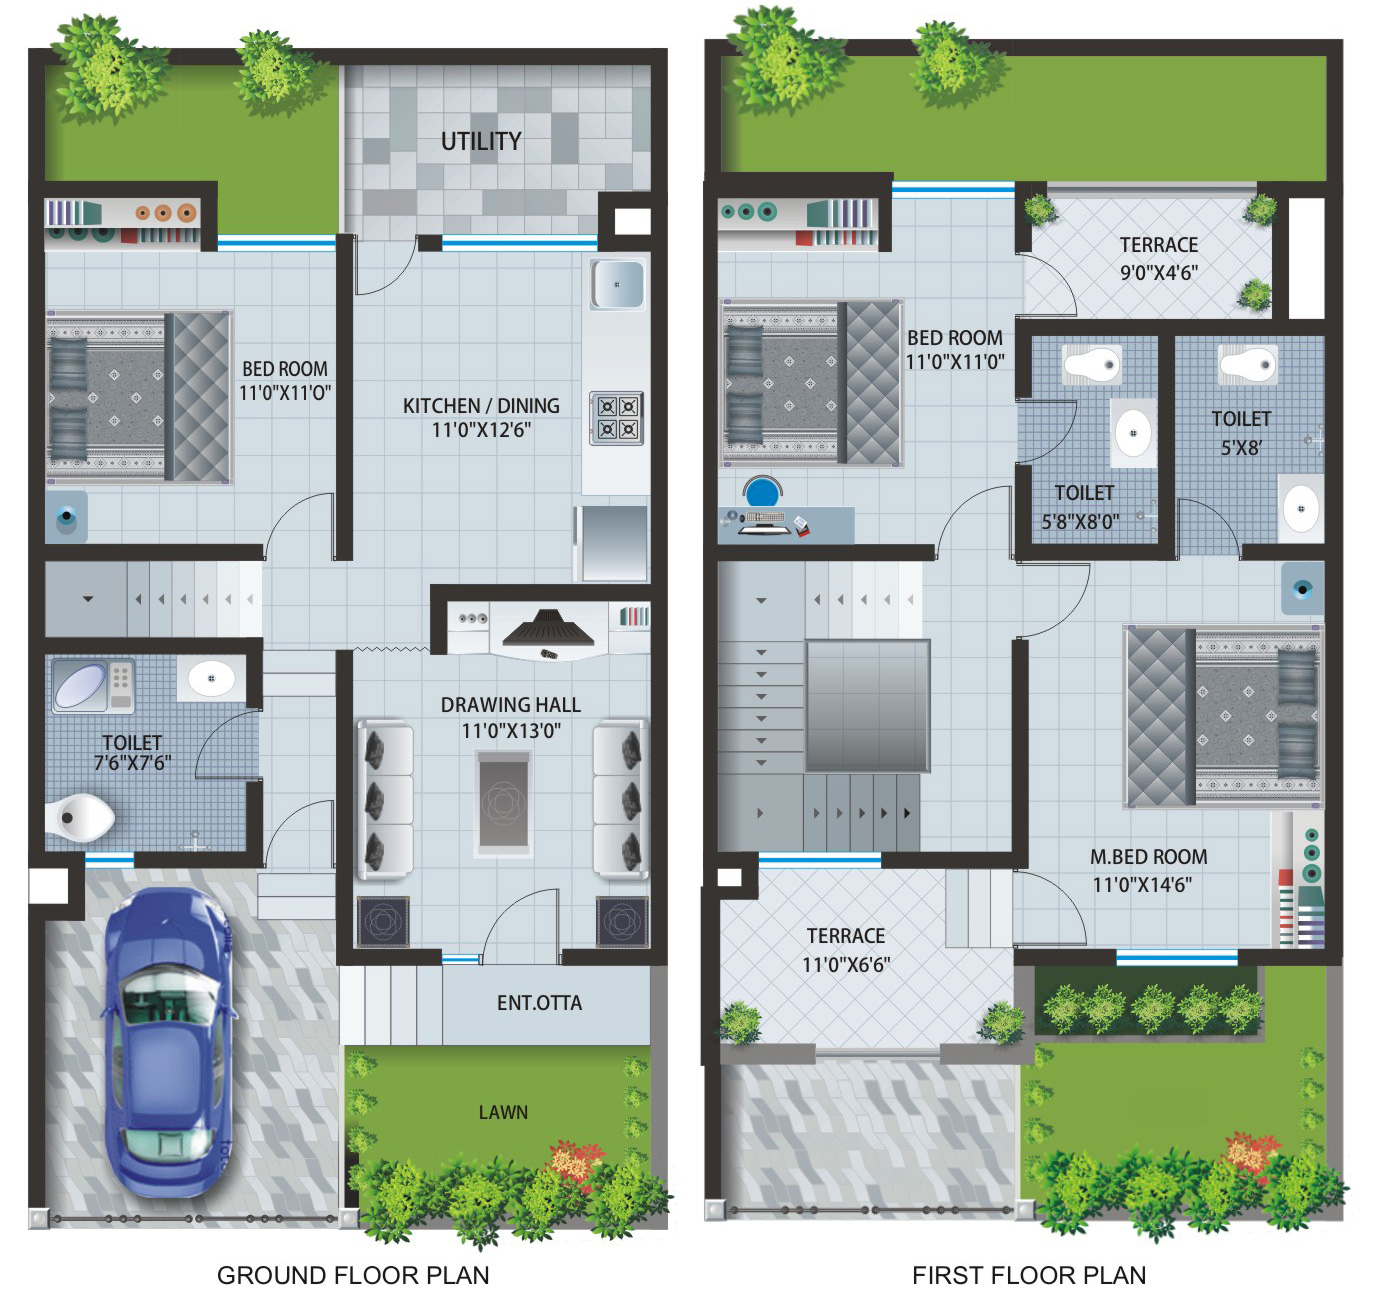 Row house layout plan patel pride aurangabad for Row house layout plan